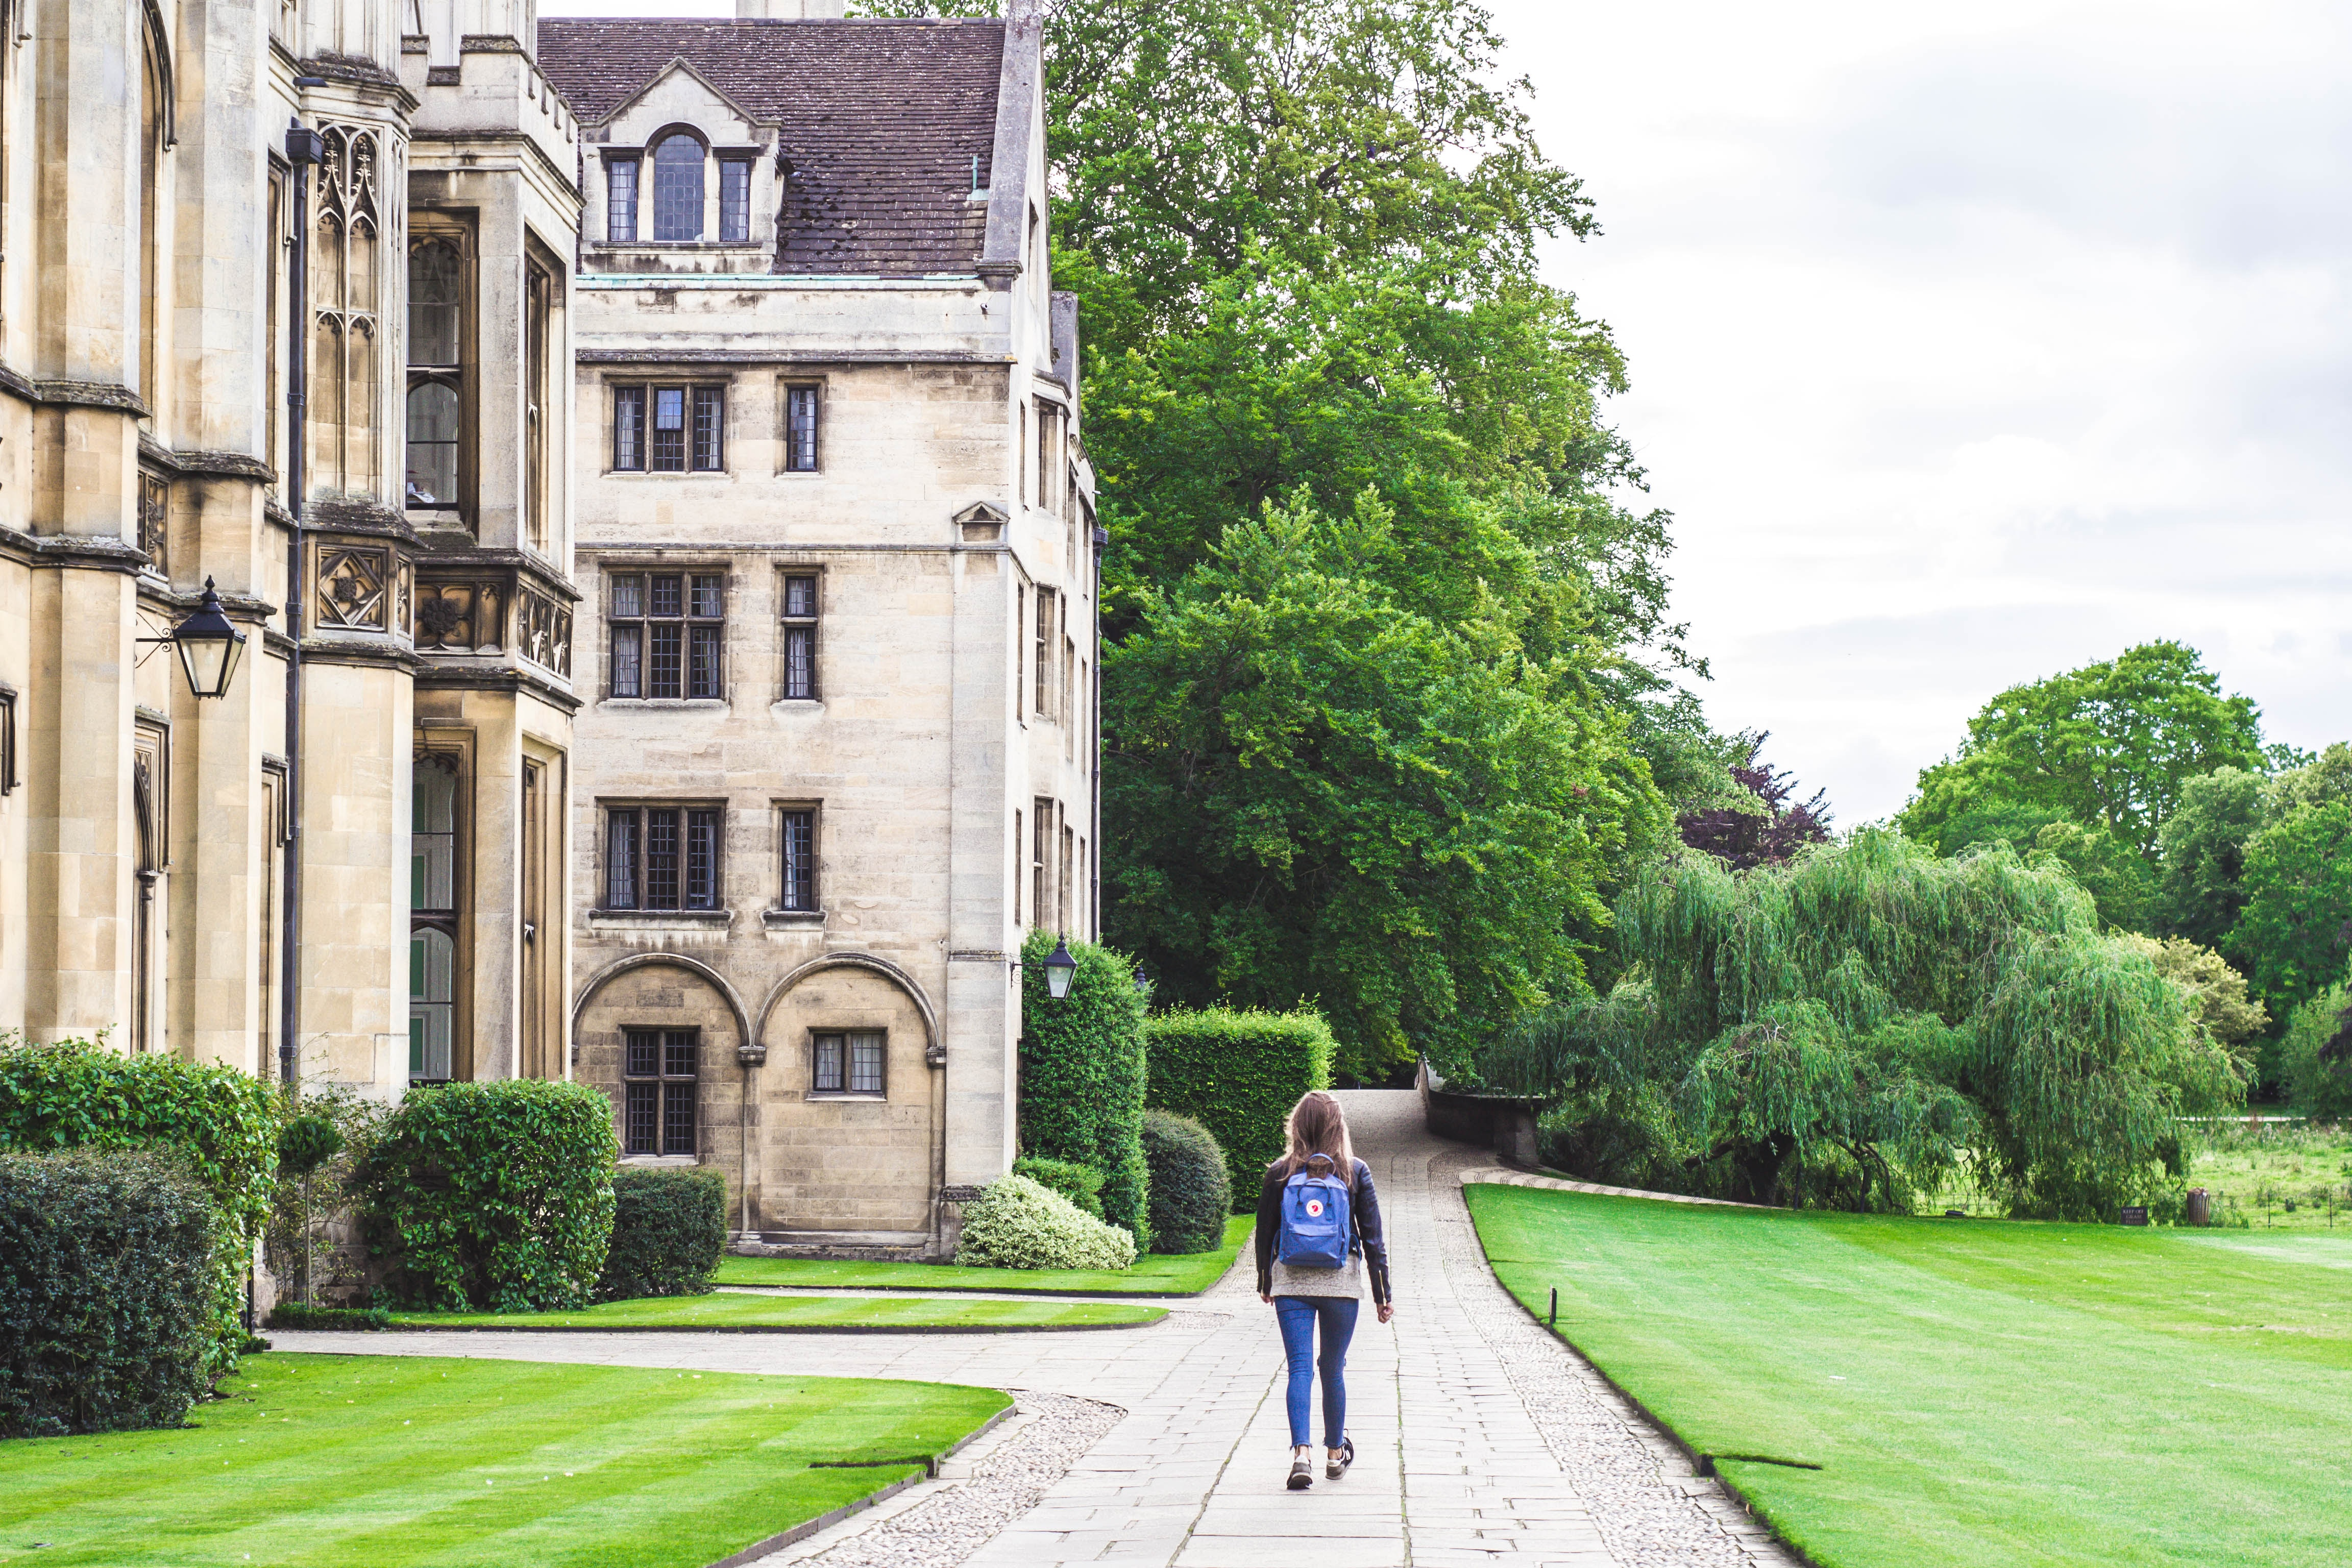 A student walks through the grounds at King's College